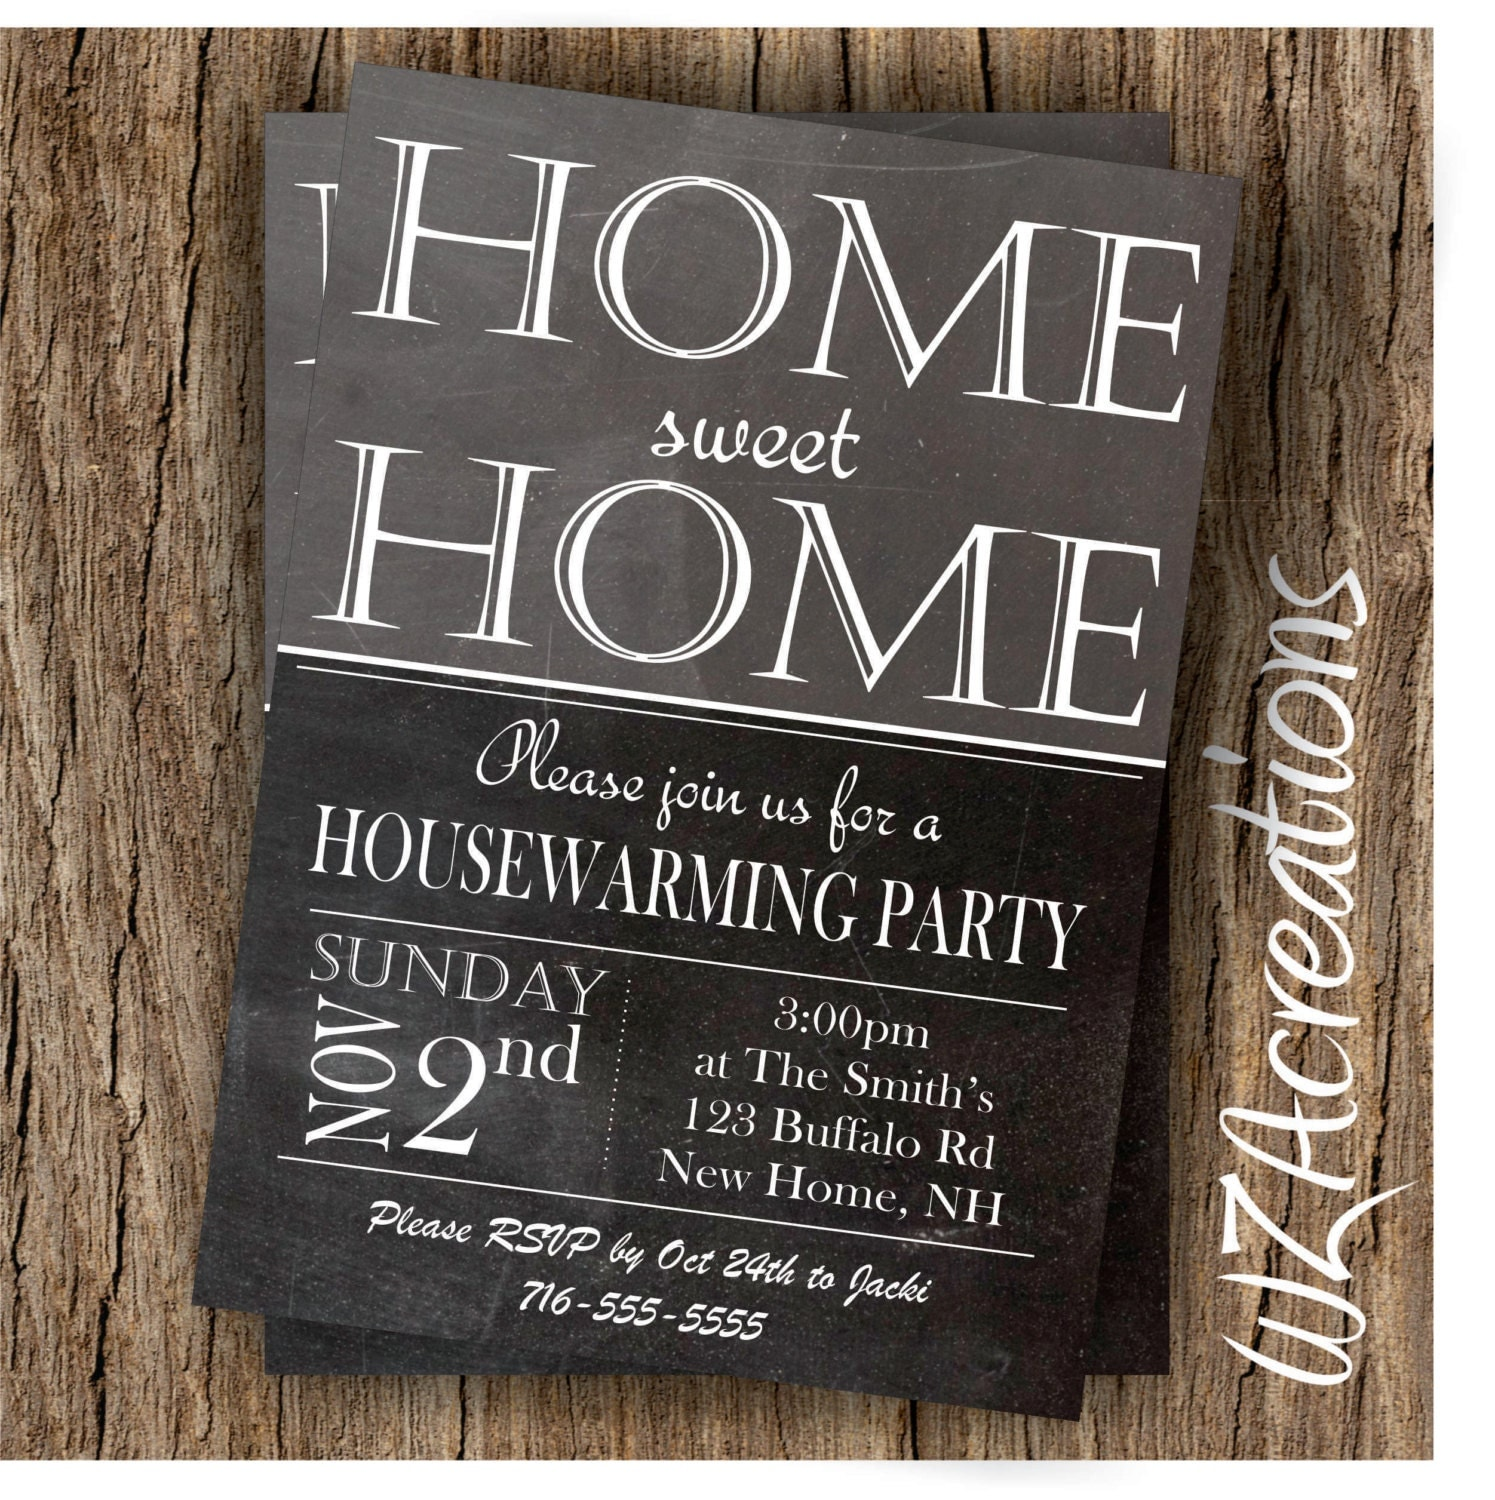 housewarming party invitation house warming invite. Black Bedroom Furniture Sets. Home Design Ideas